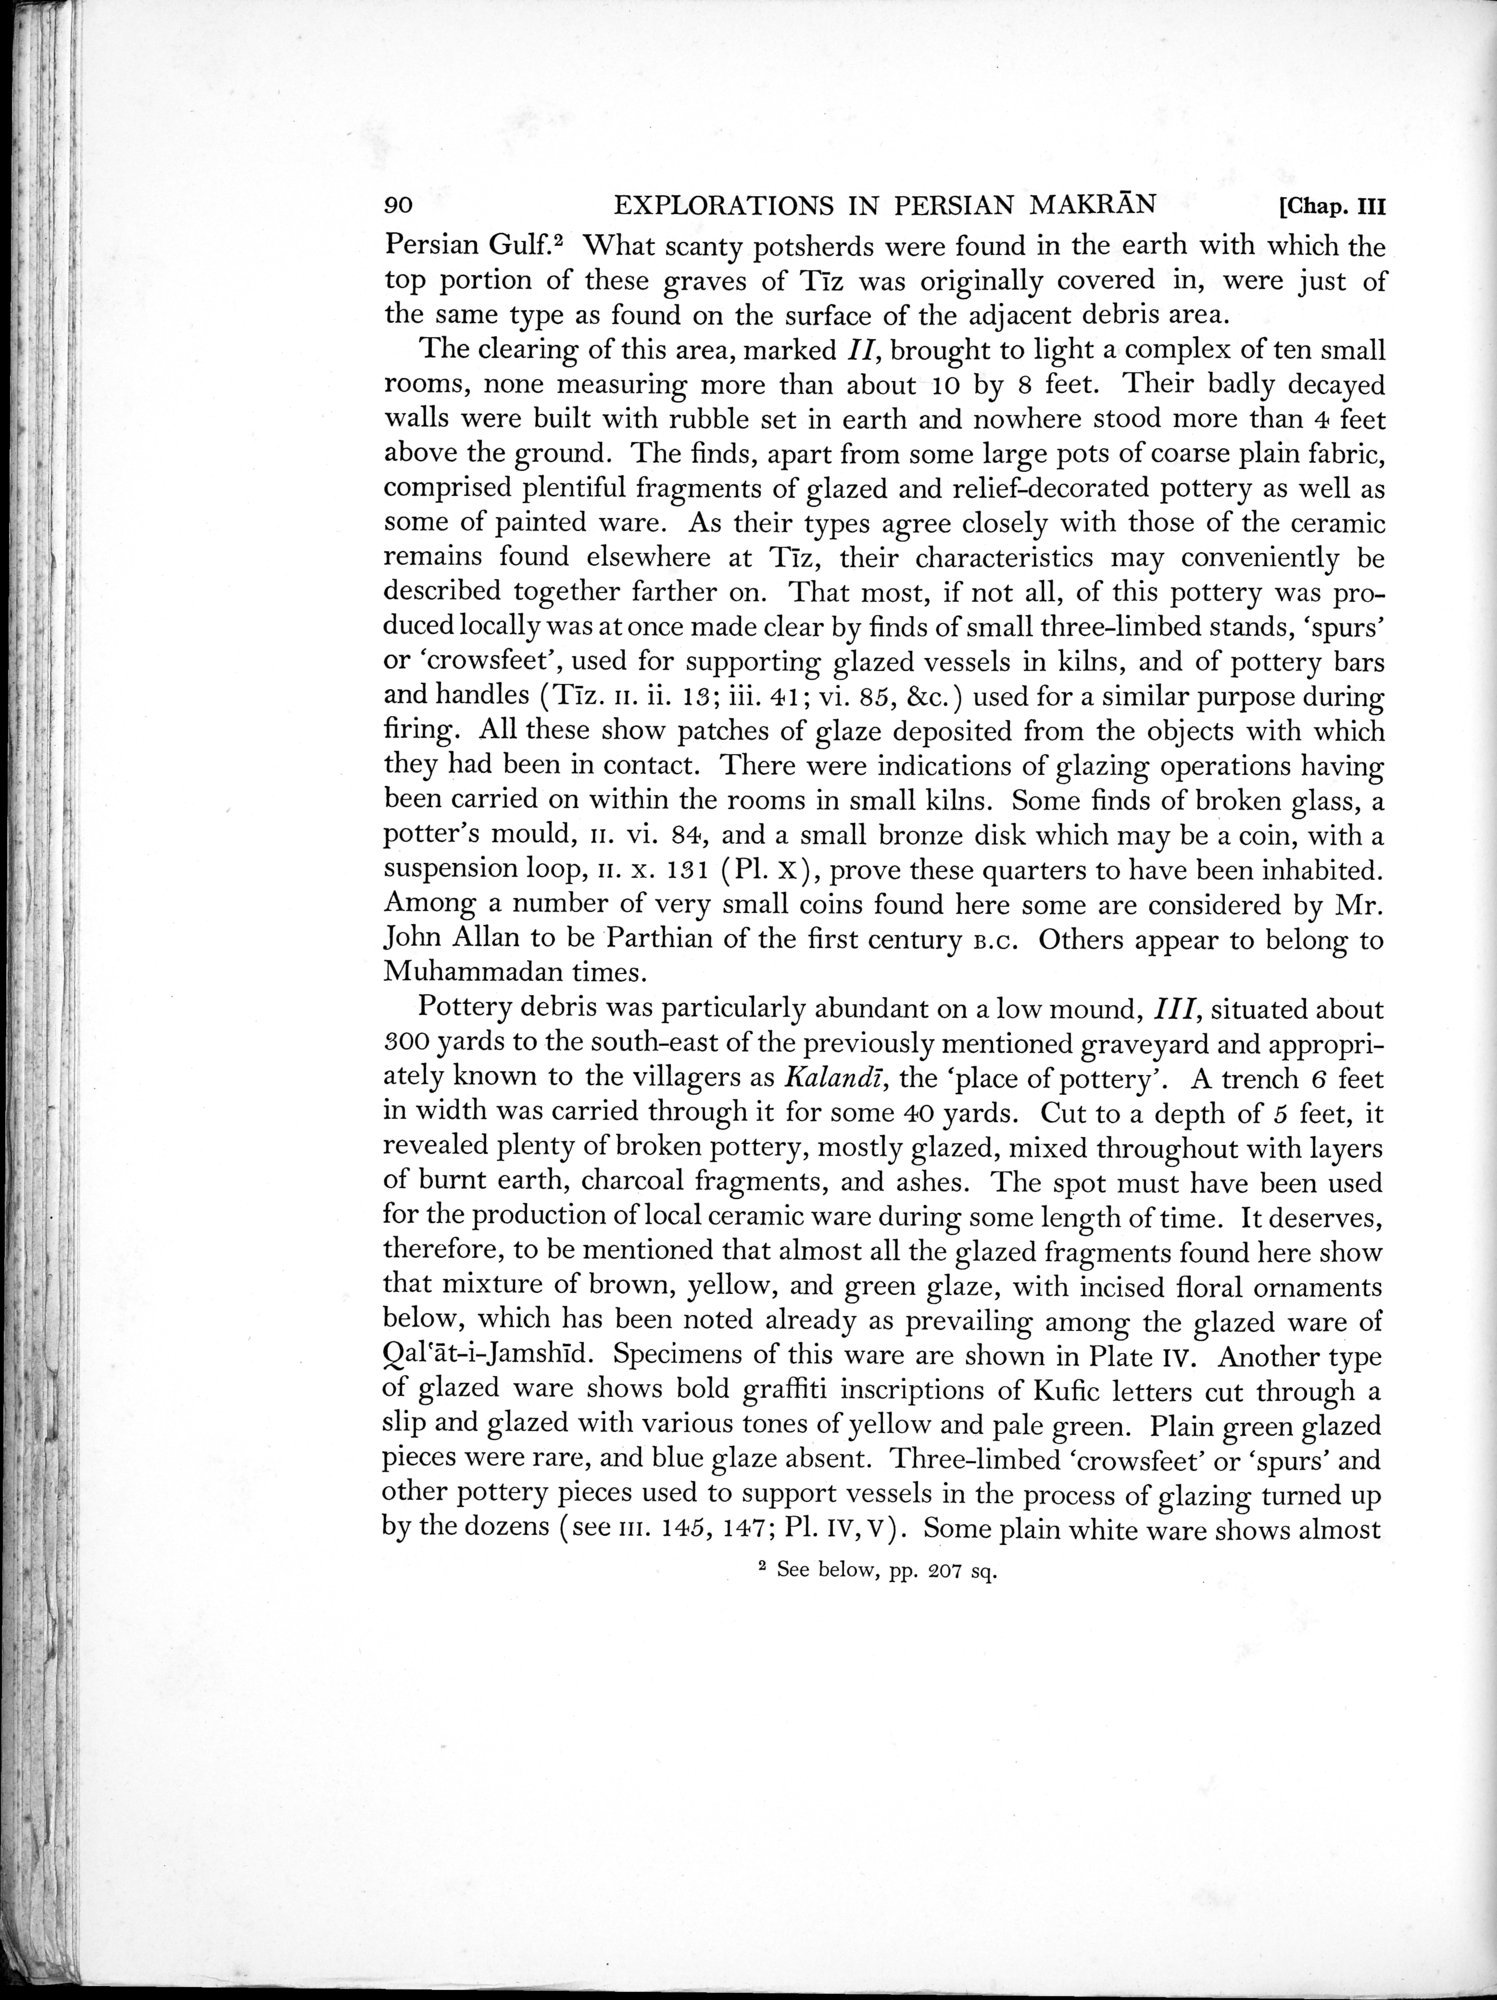 Archaeological Reconnaissances in North-Western India and South-Eastern Īrān : vol.1 / Page 138 (Grayscale High Resolution Image)